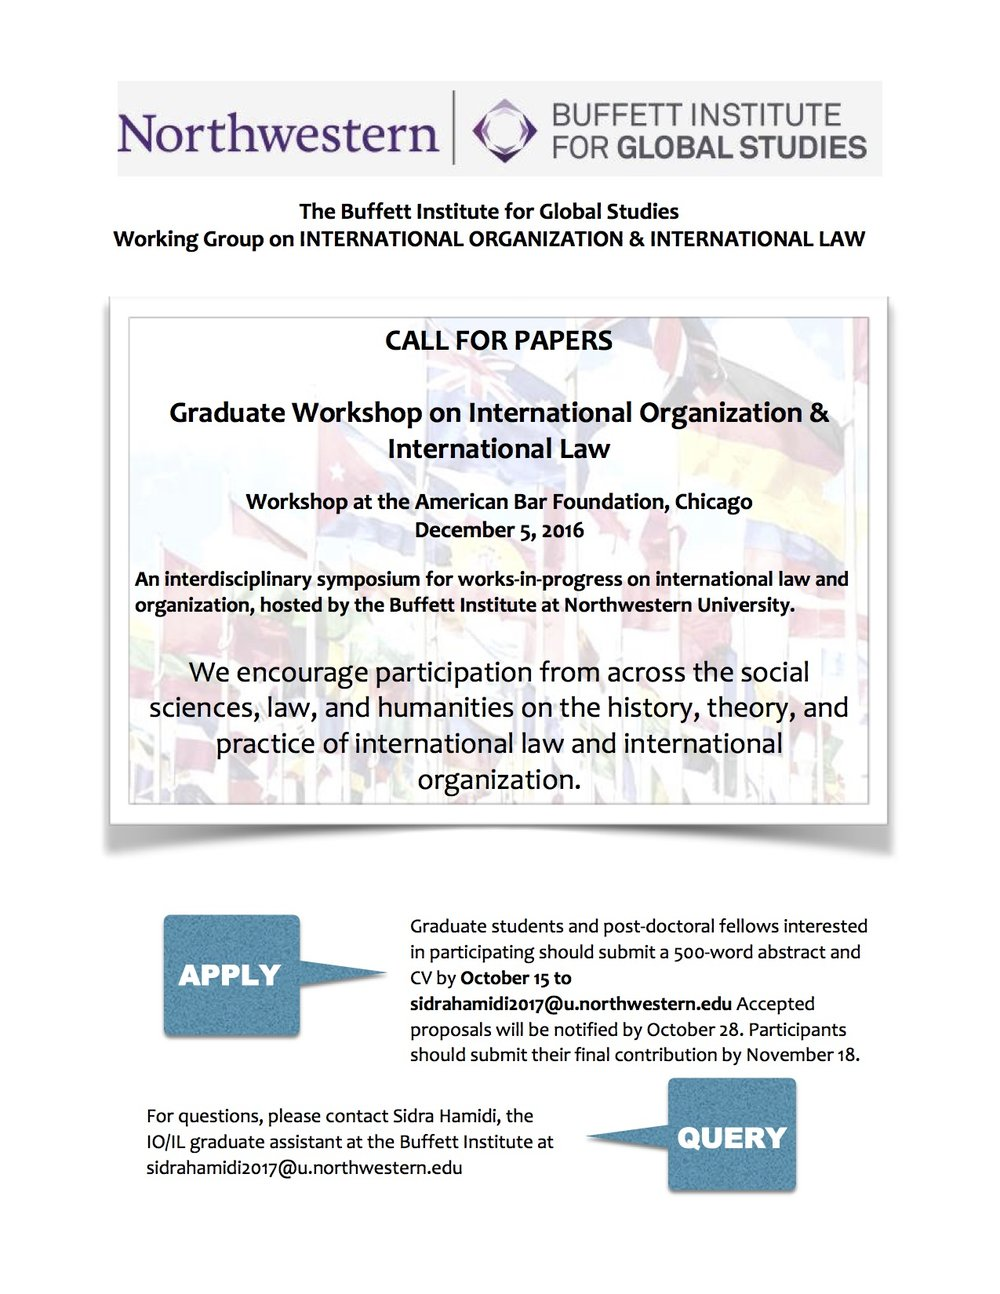 2016 IO-IL Graduate Workshop Call for Papers.jpg